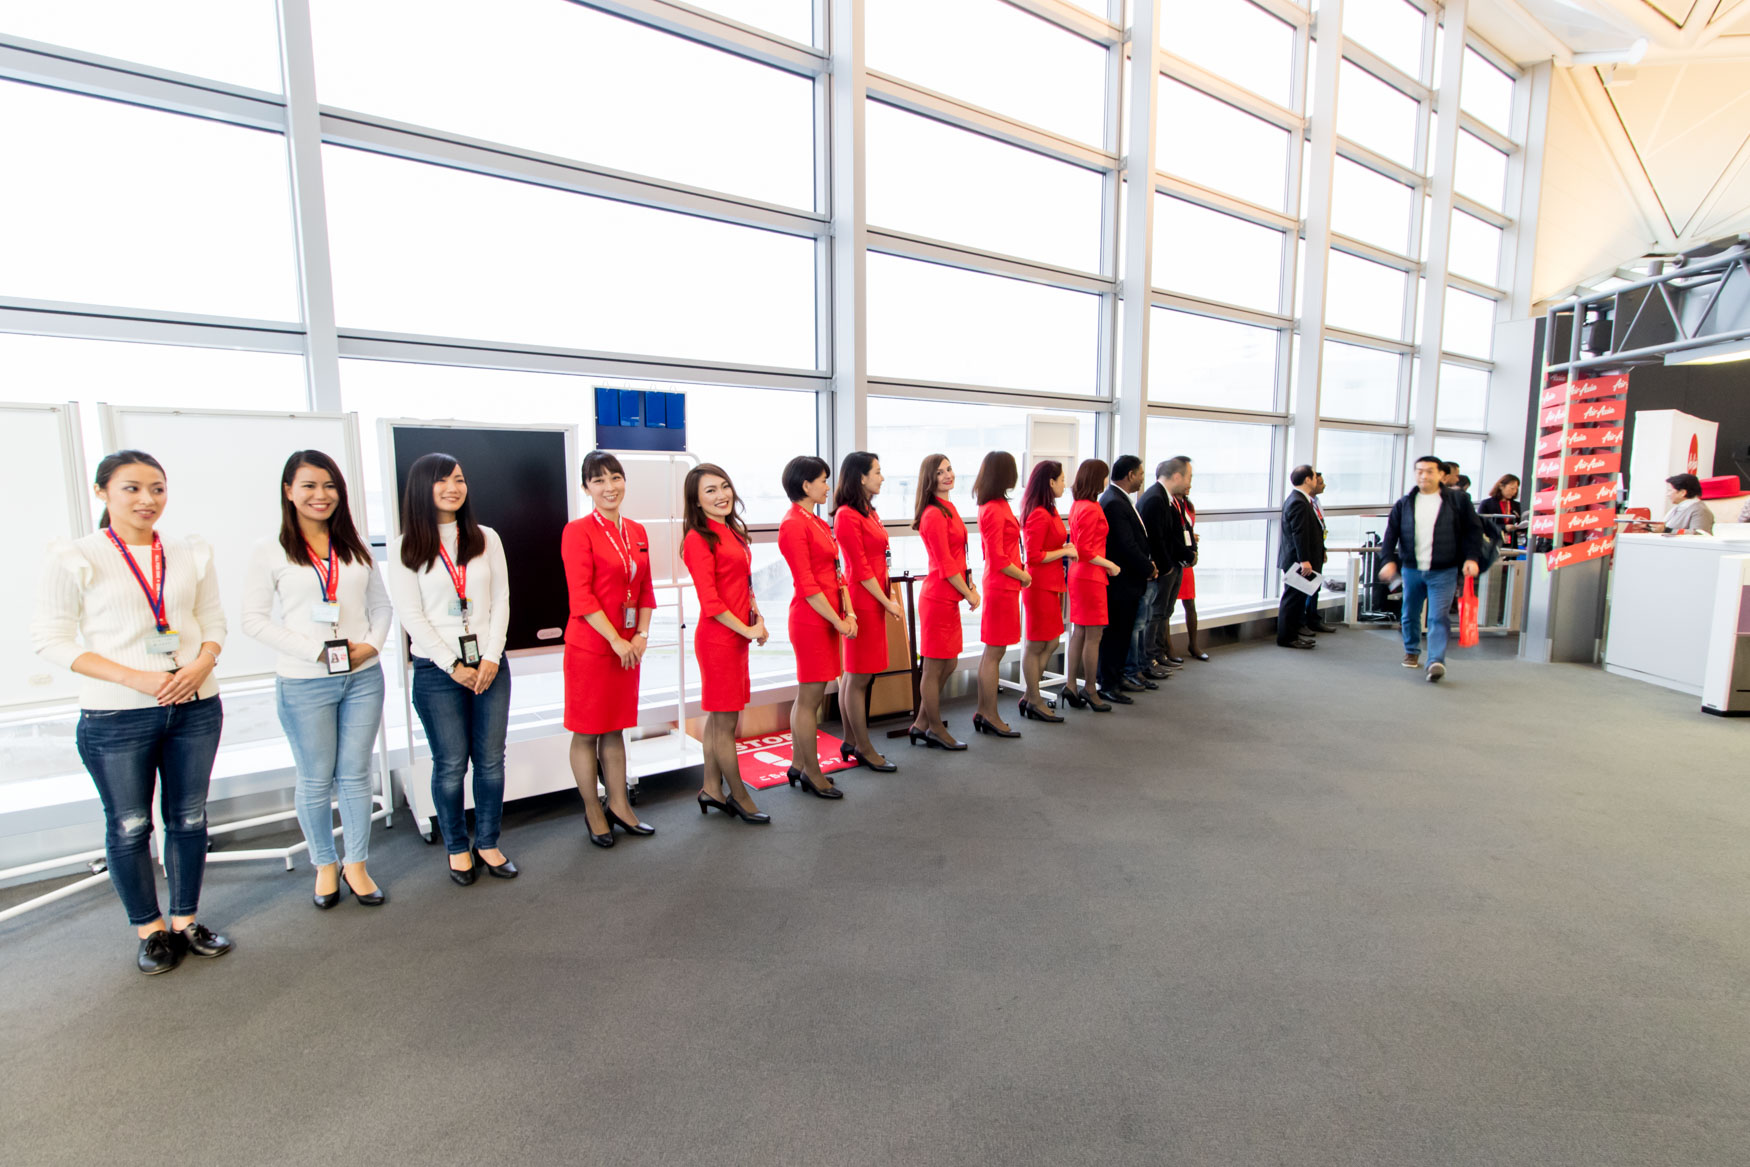 AirAsia Staff Welcoming Passengers on the Inaugural Flight